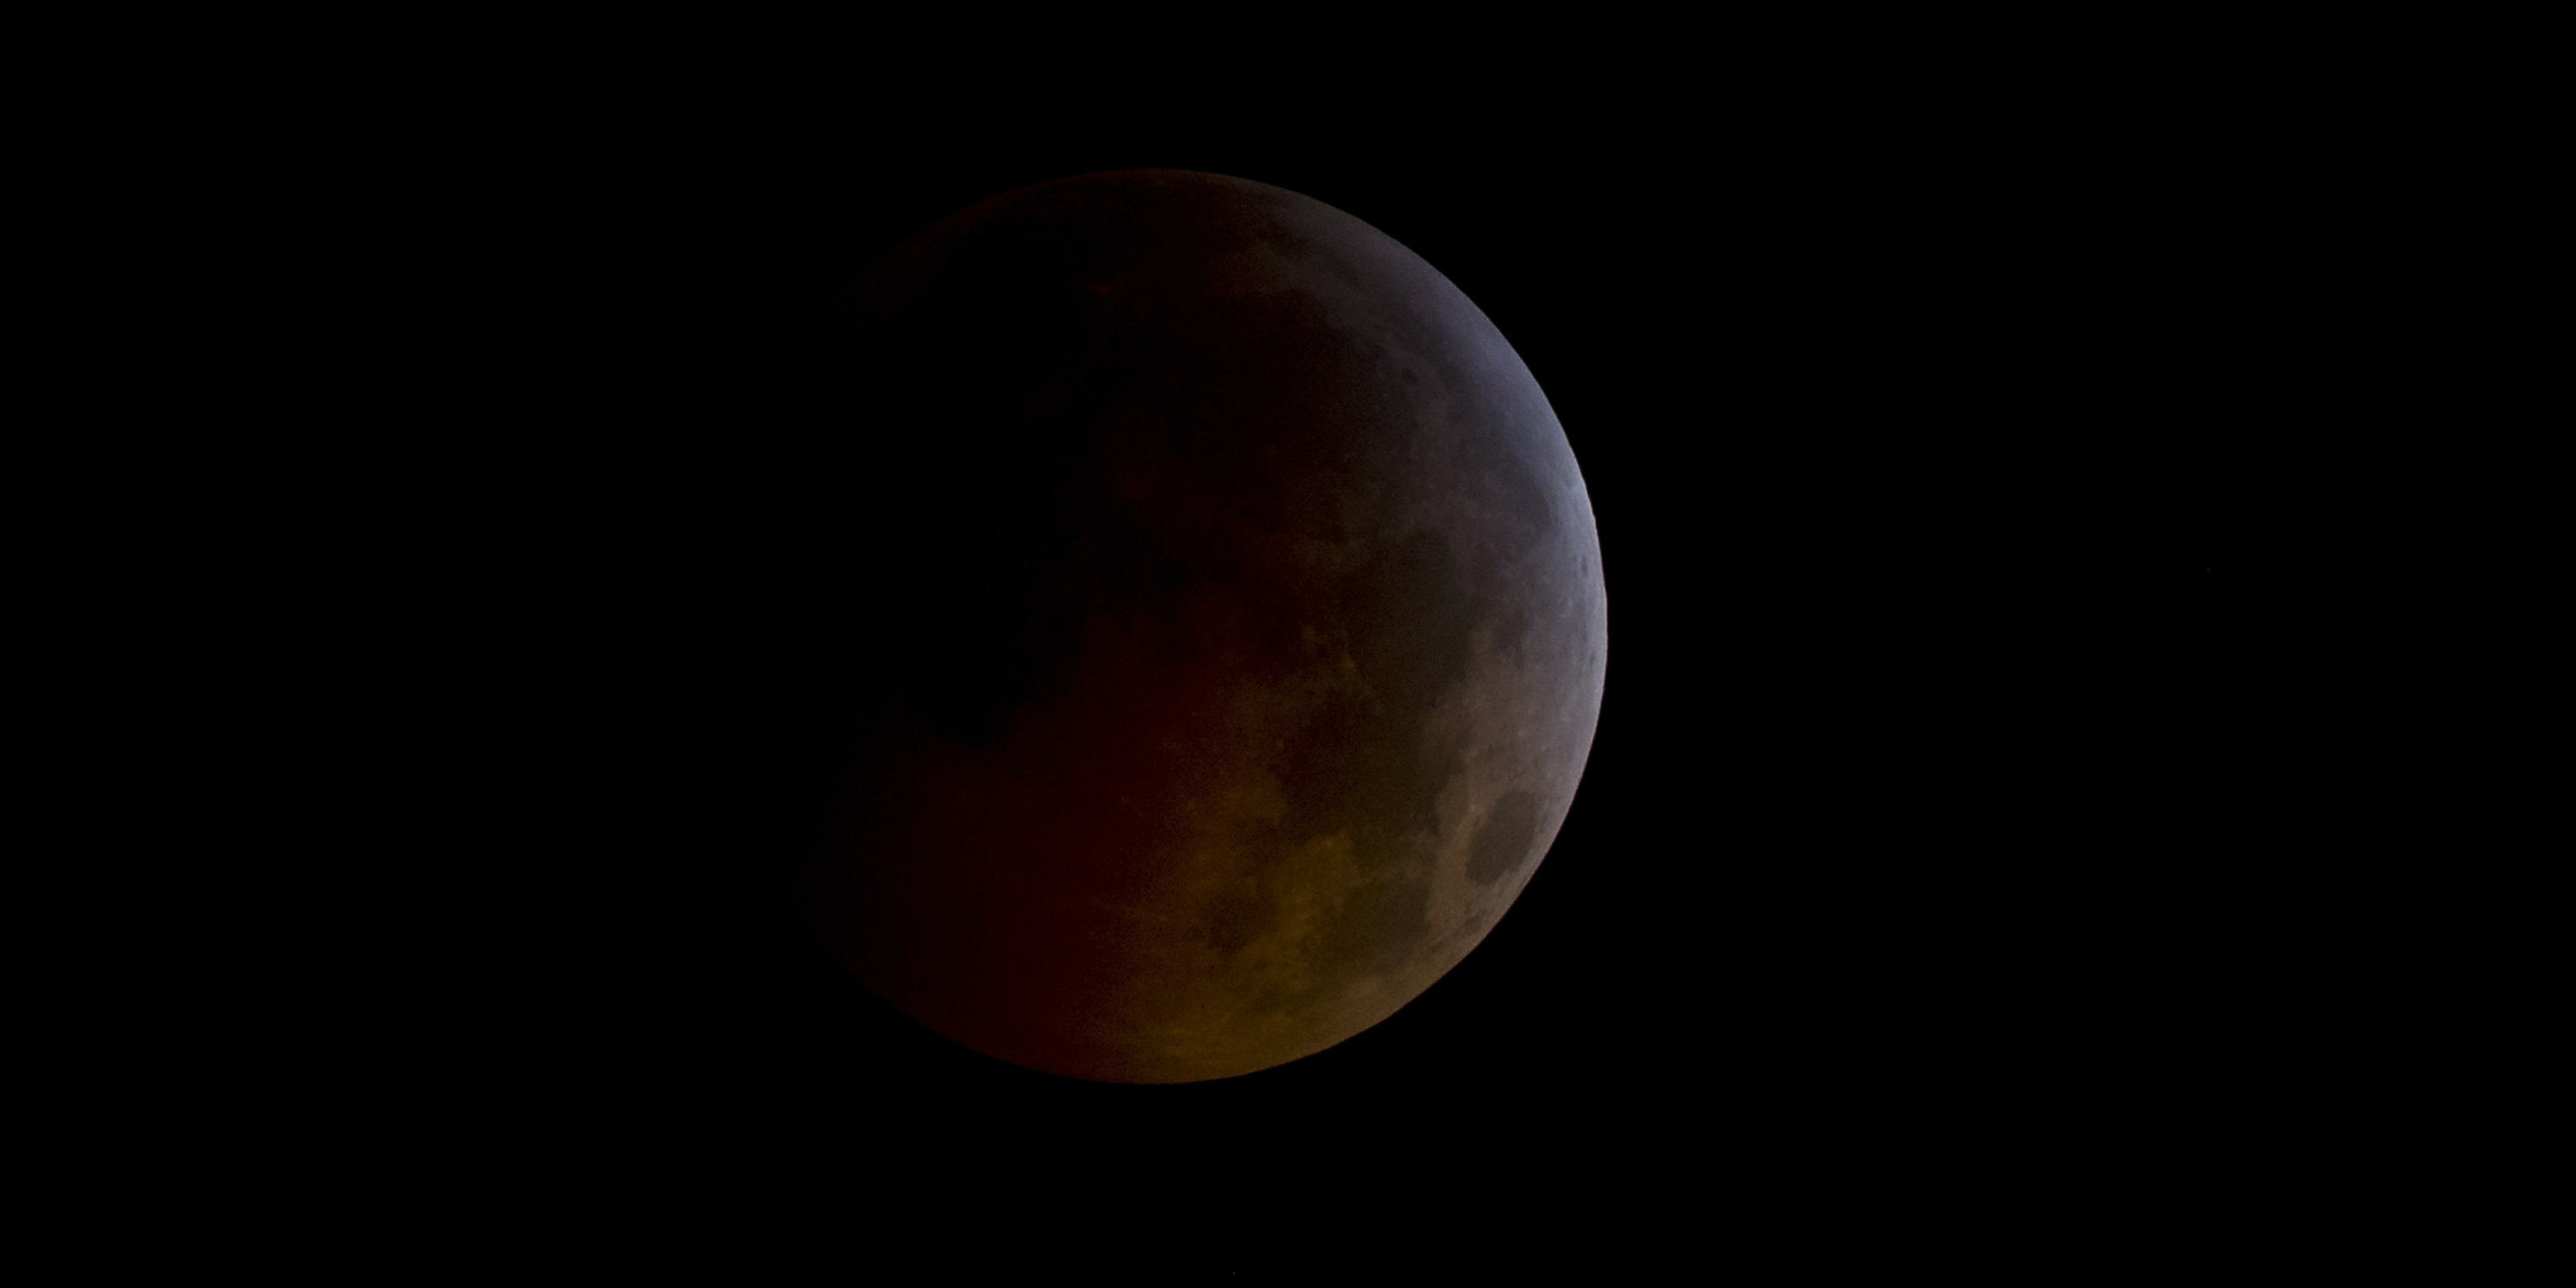 ARLINGTON, VA - DECEMBER 21:  In this handout photo provided by NASA, A total lunar eclipse is seen as the full moon is shadowed by the Earth on the arrival of the winter solstice, on December 21, 2010 in Arlington, Virginia.  It is the first lunar eclipse that has coincided with the Winter Solstice, the shortest day of the year, since 1638.   (Photo by Bill Ingalls/NASA via Getty Images)